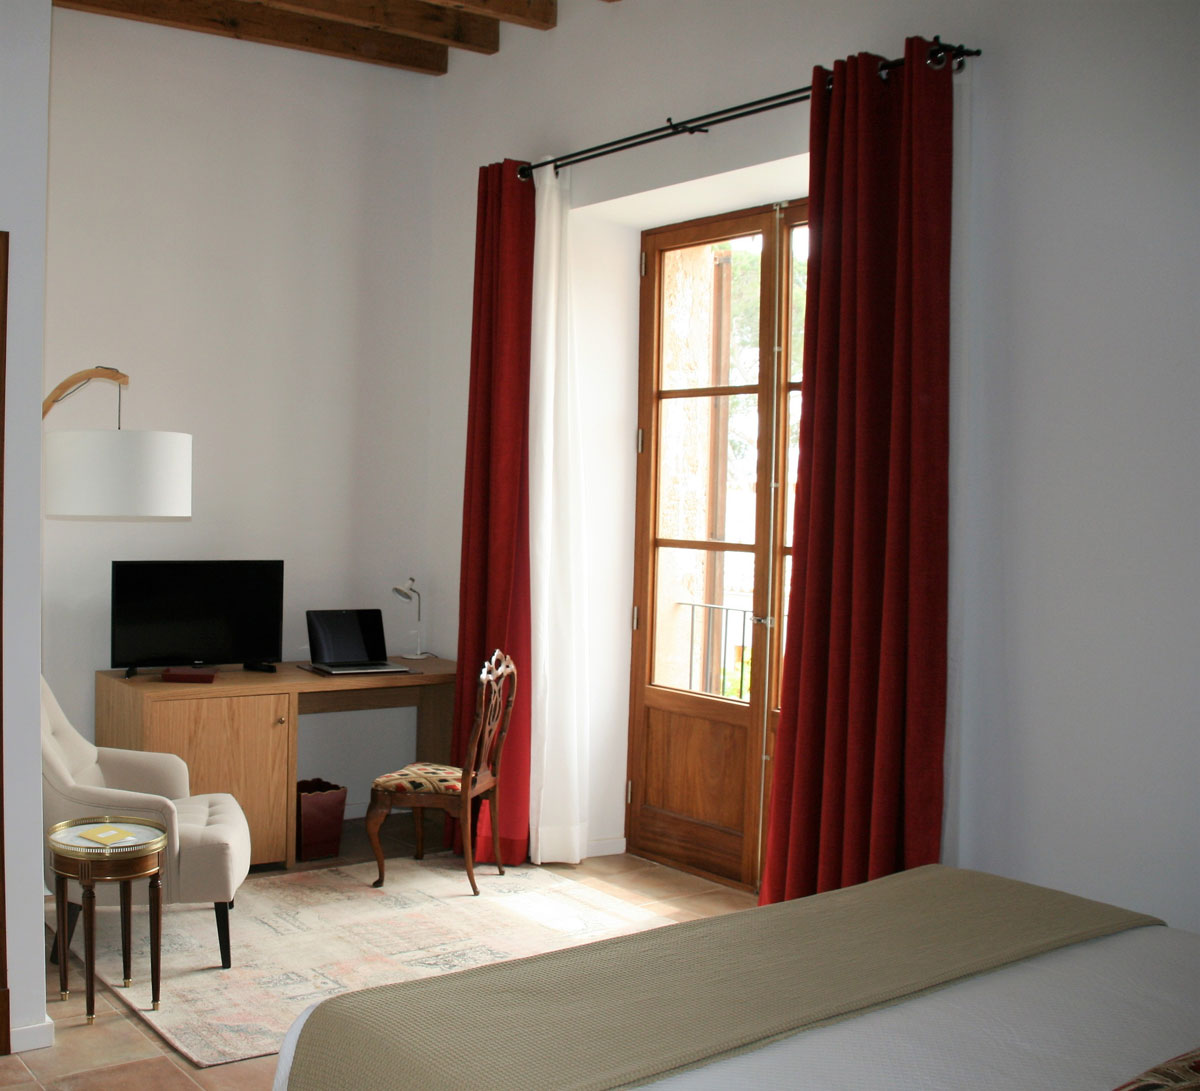 10Mallorca,holidays,countryhouse,finequality,pool,relax